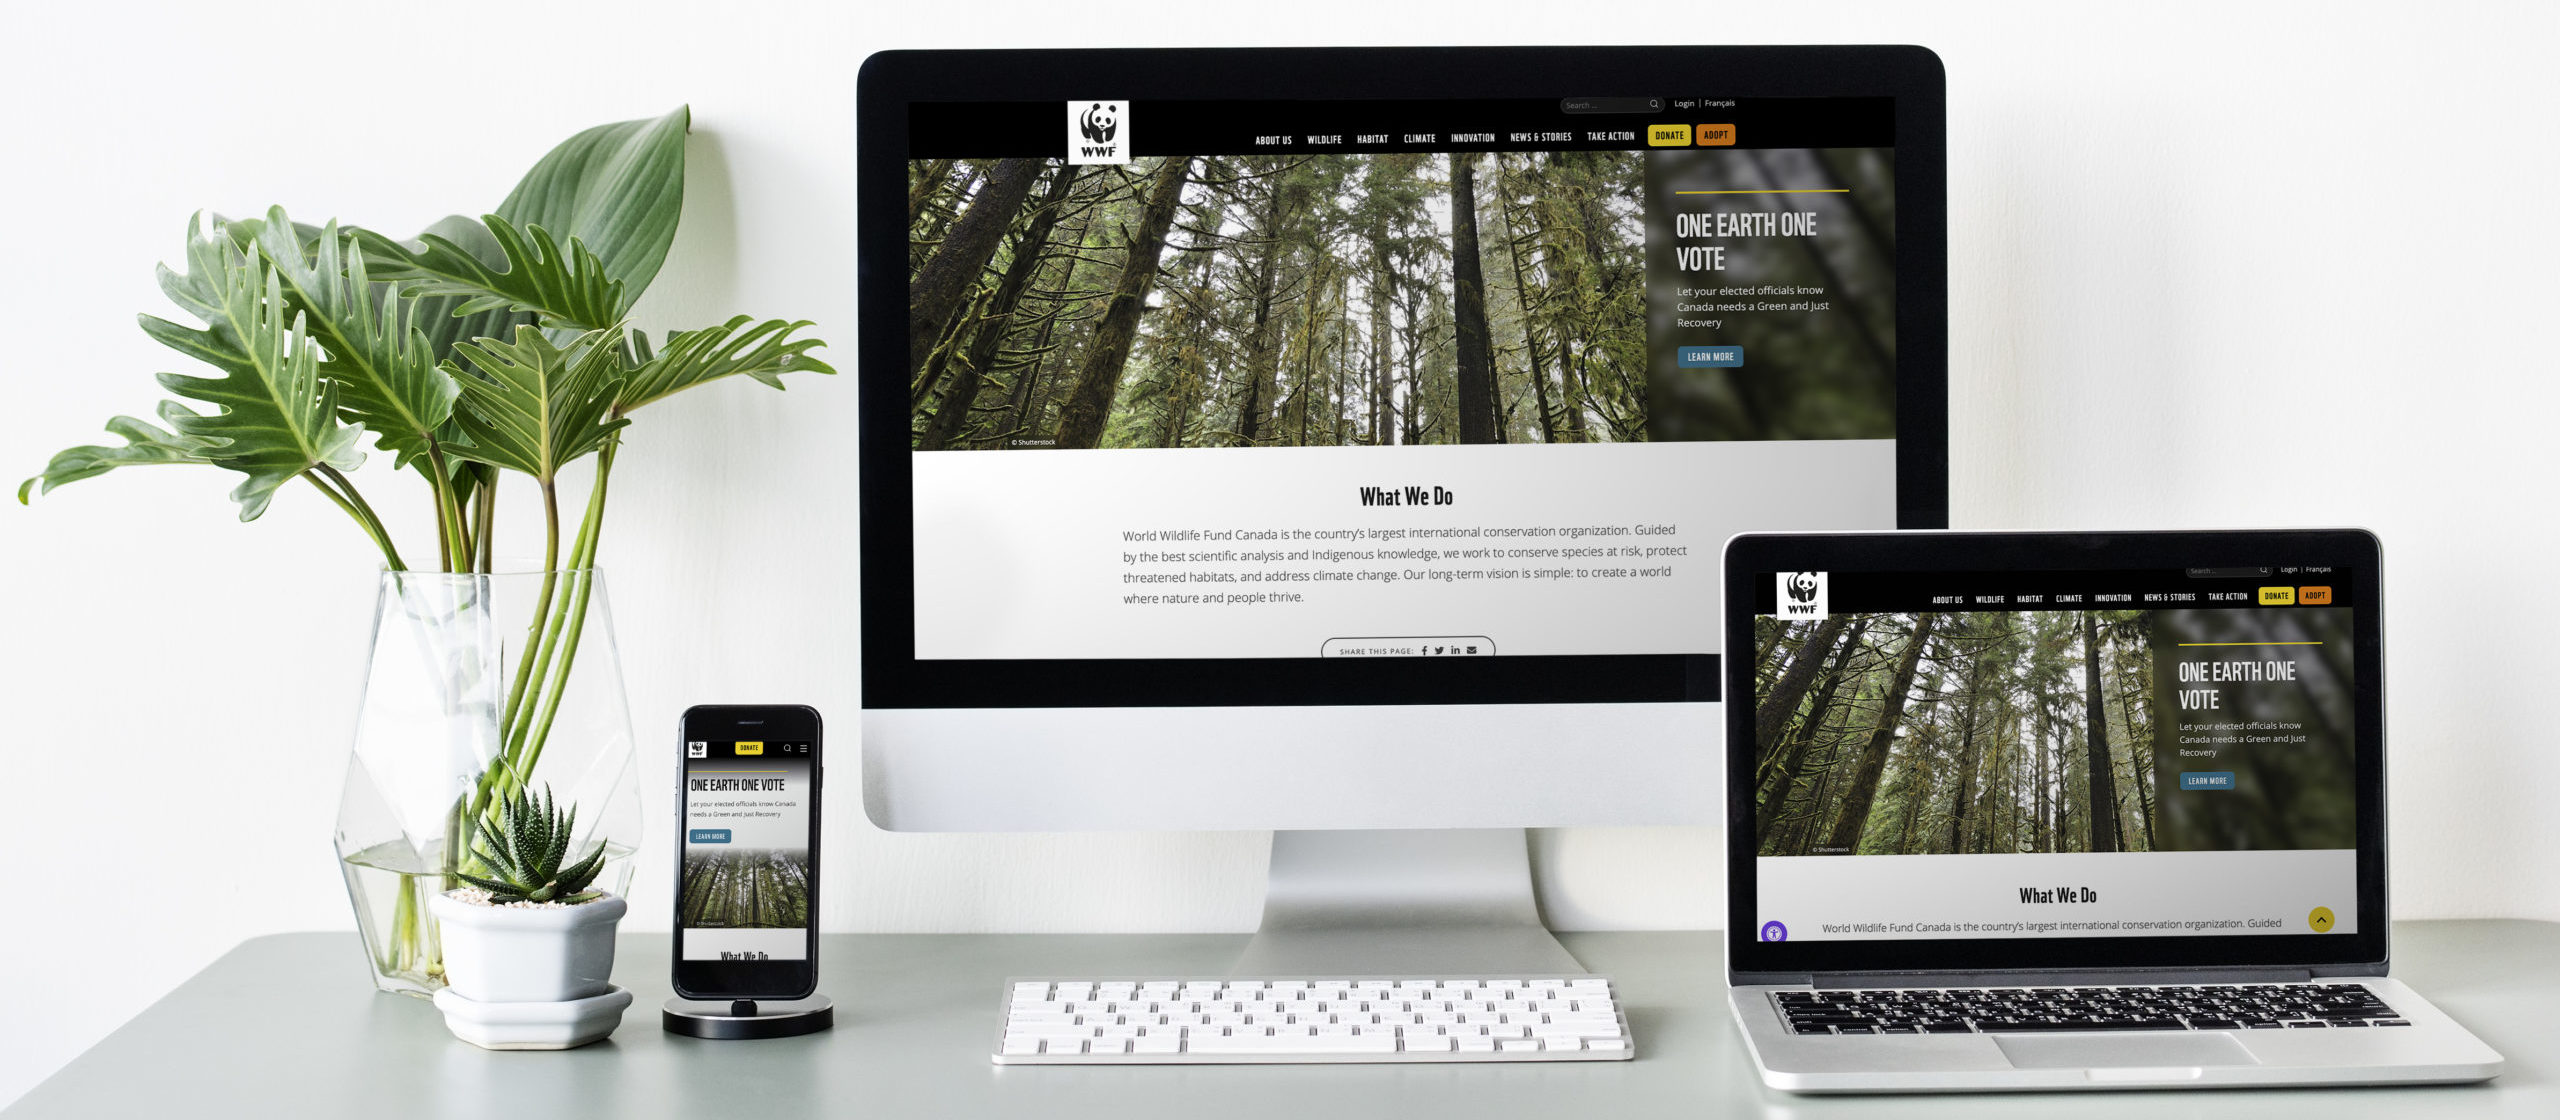 Image of website featured on three different devices